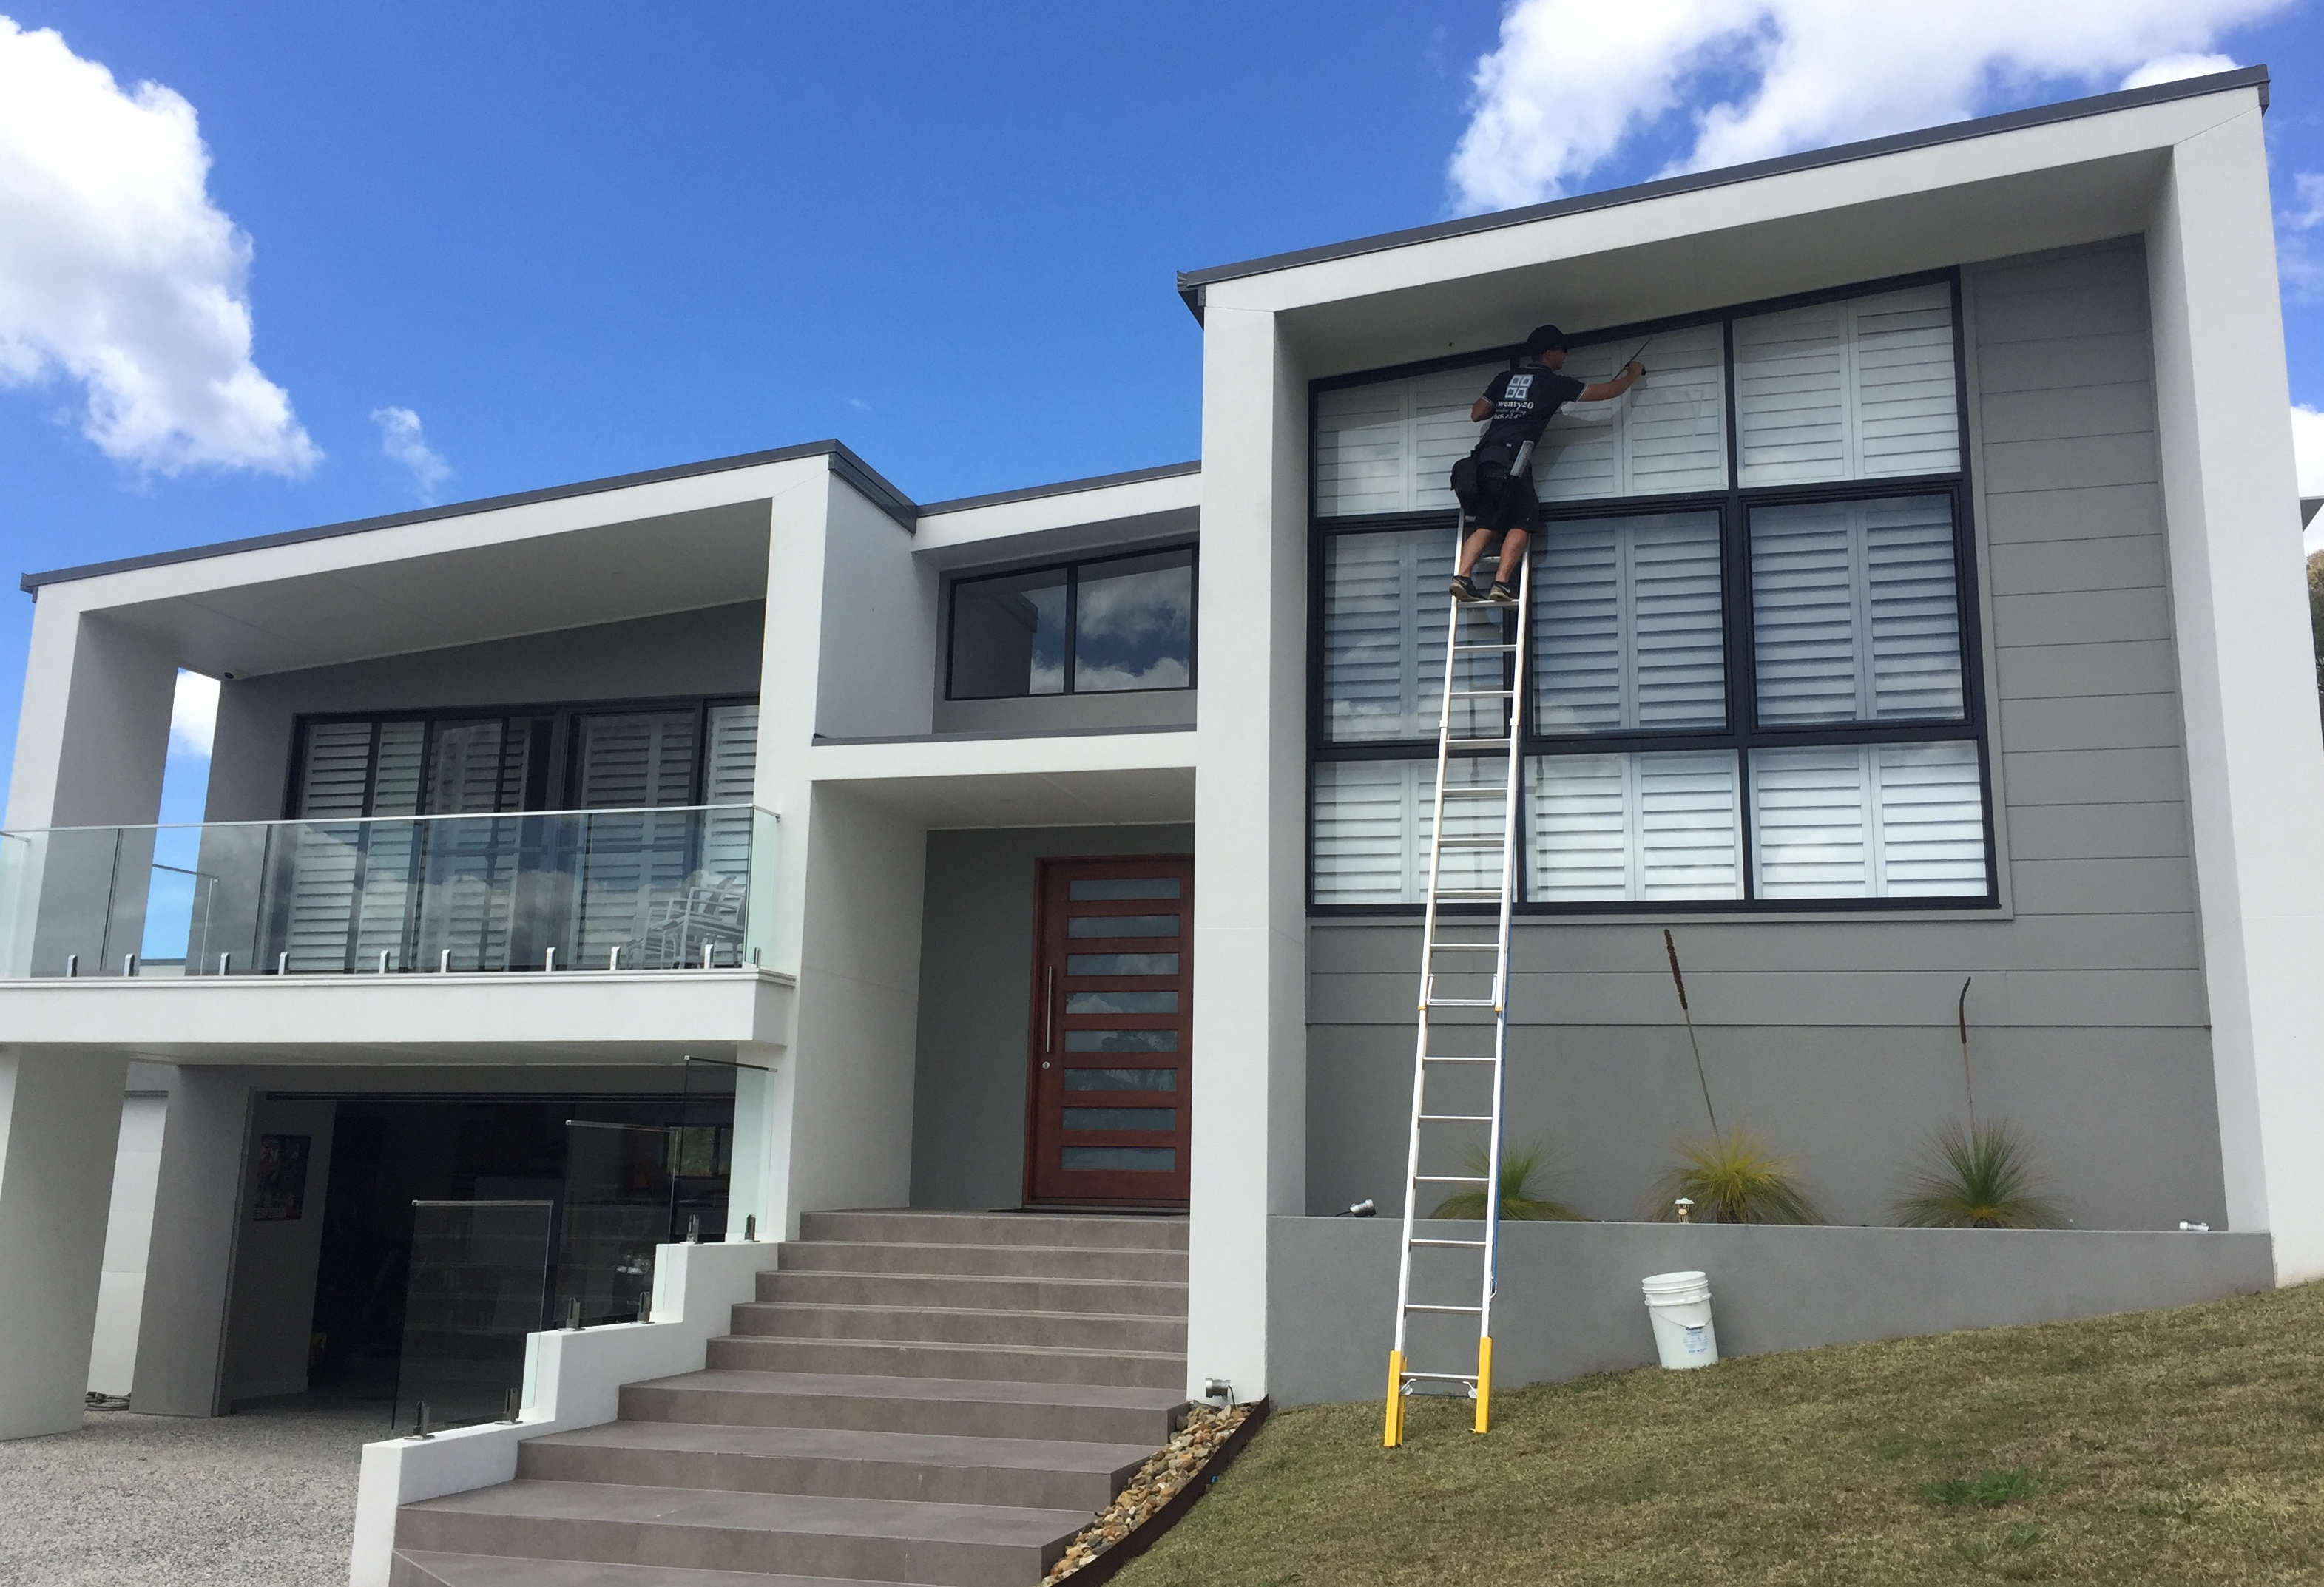 Window cleaning: How clean windows can increase or decrease your property's value